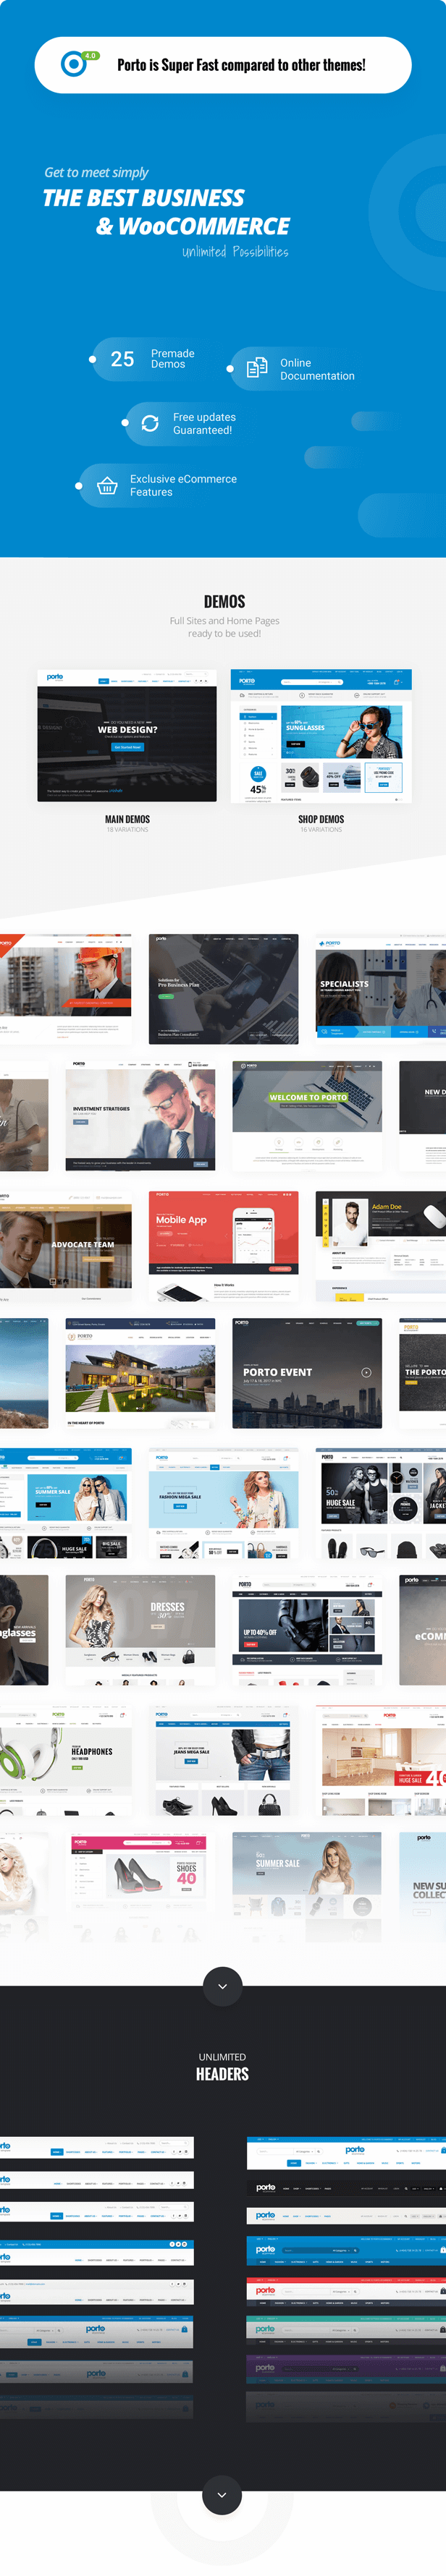 porto2 - Porto | Responsive WordPress + eCommerce Theme